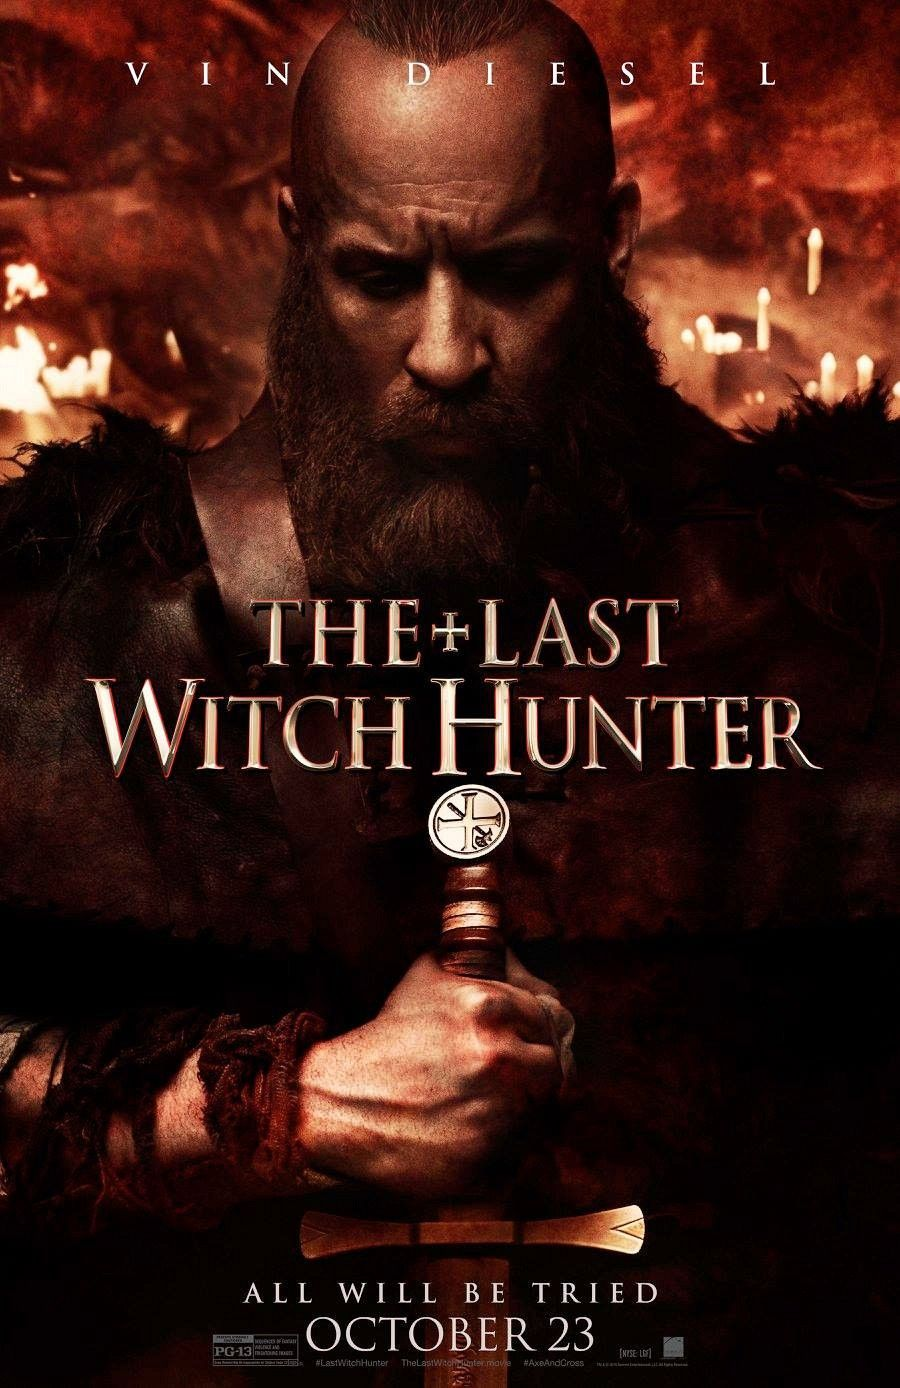 The Last Witchhunter